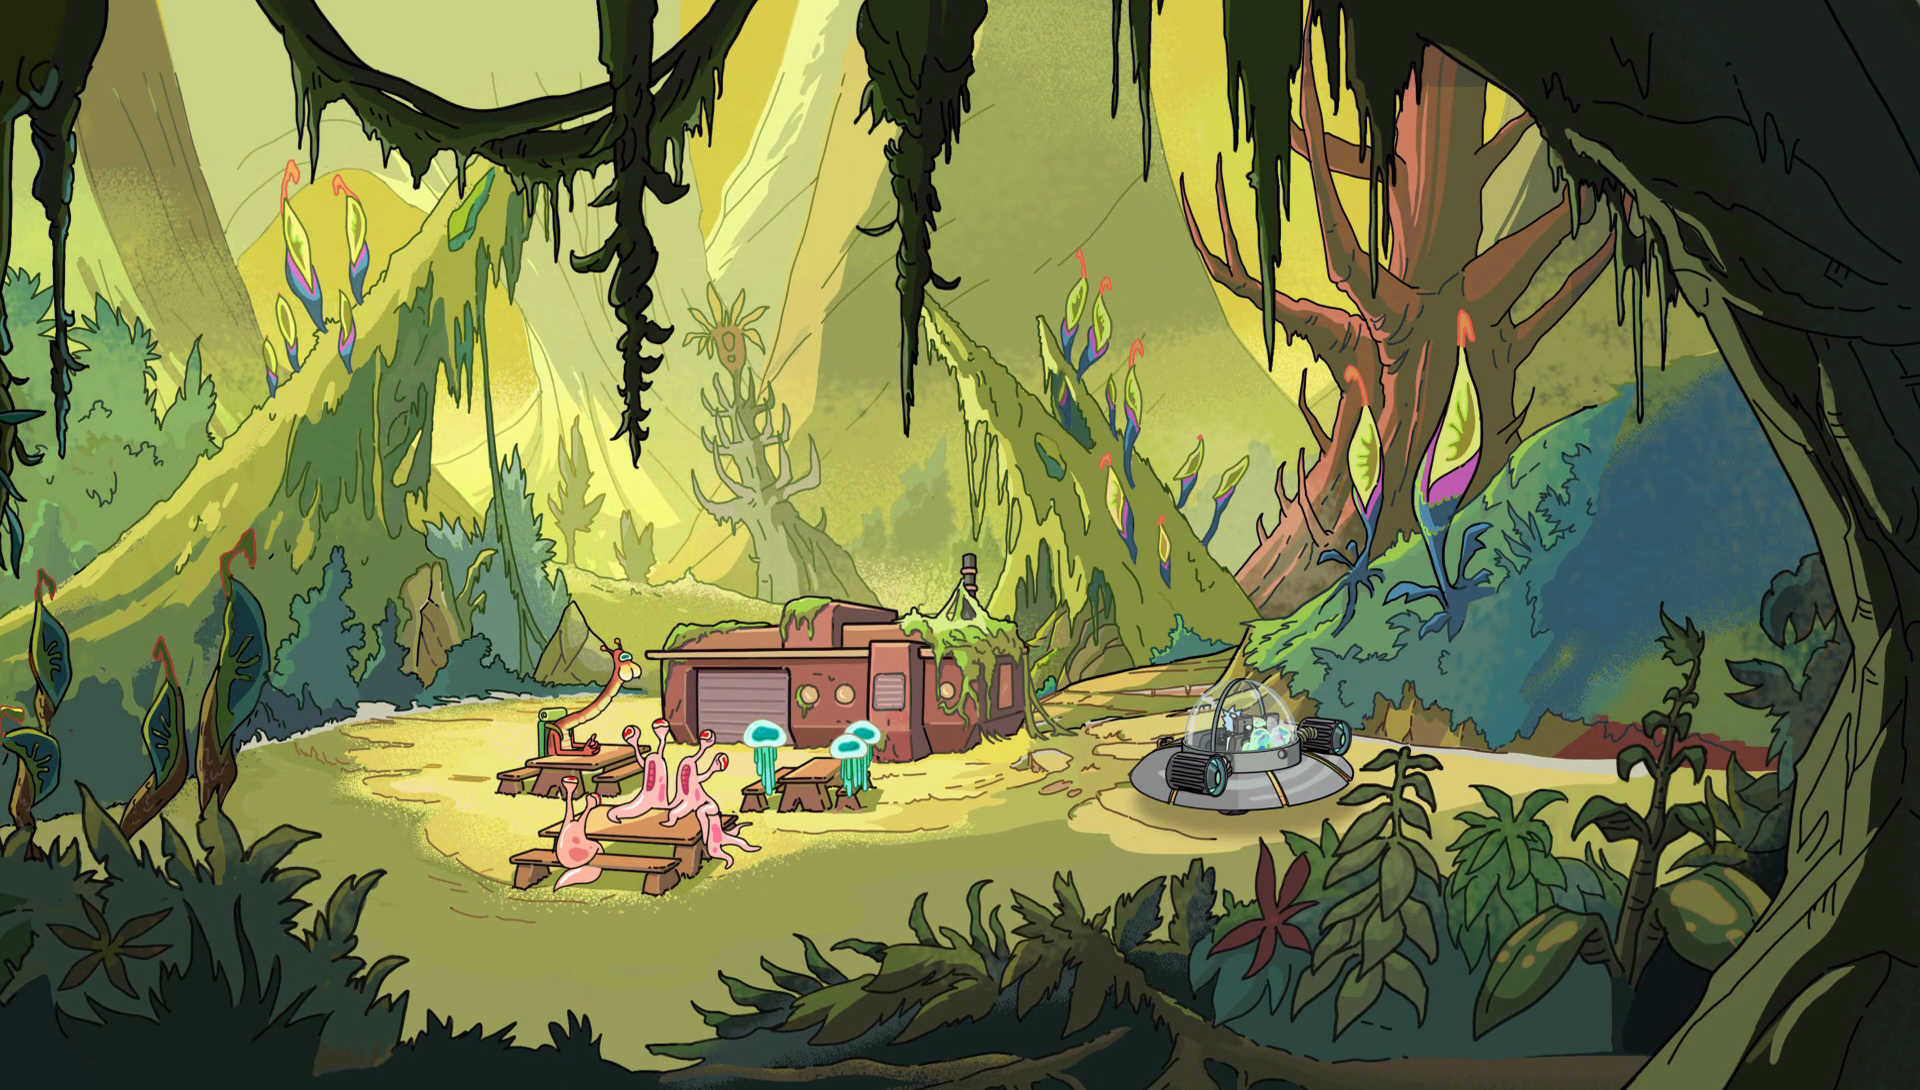 It wouldn't be the first time Rick and Morty ventured into a jungle.